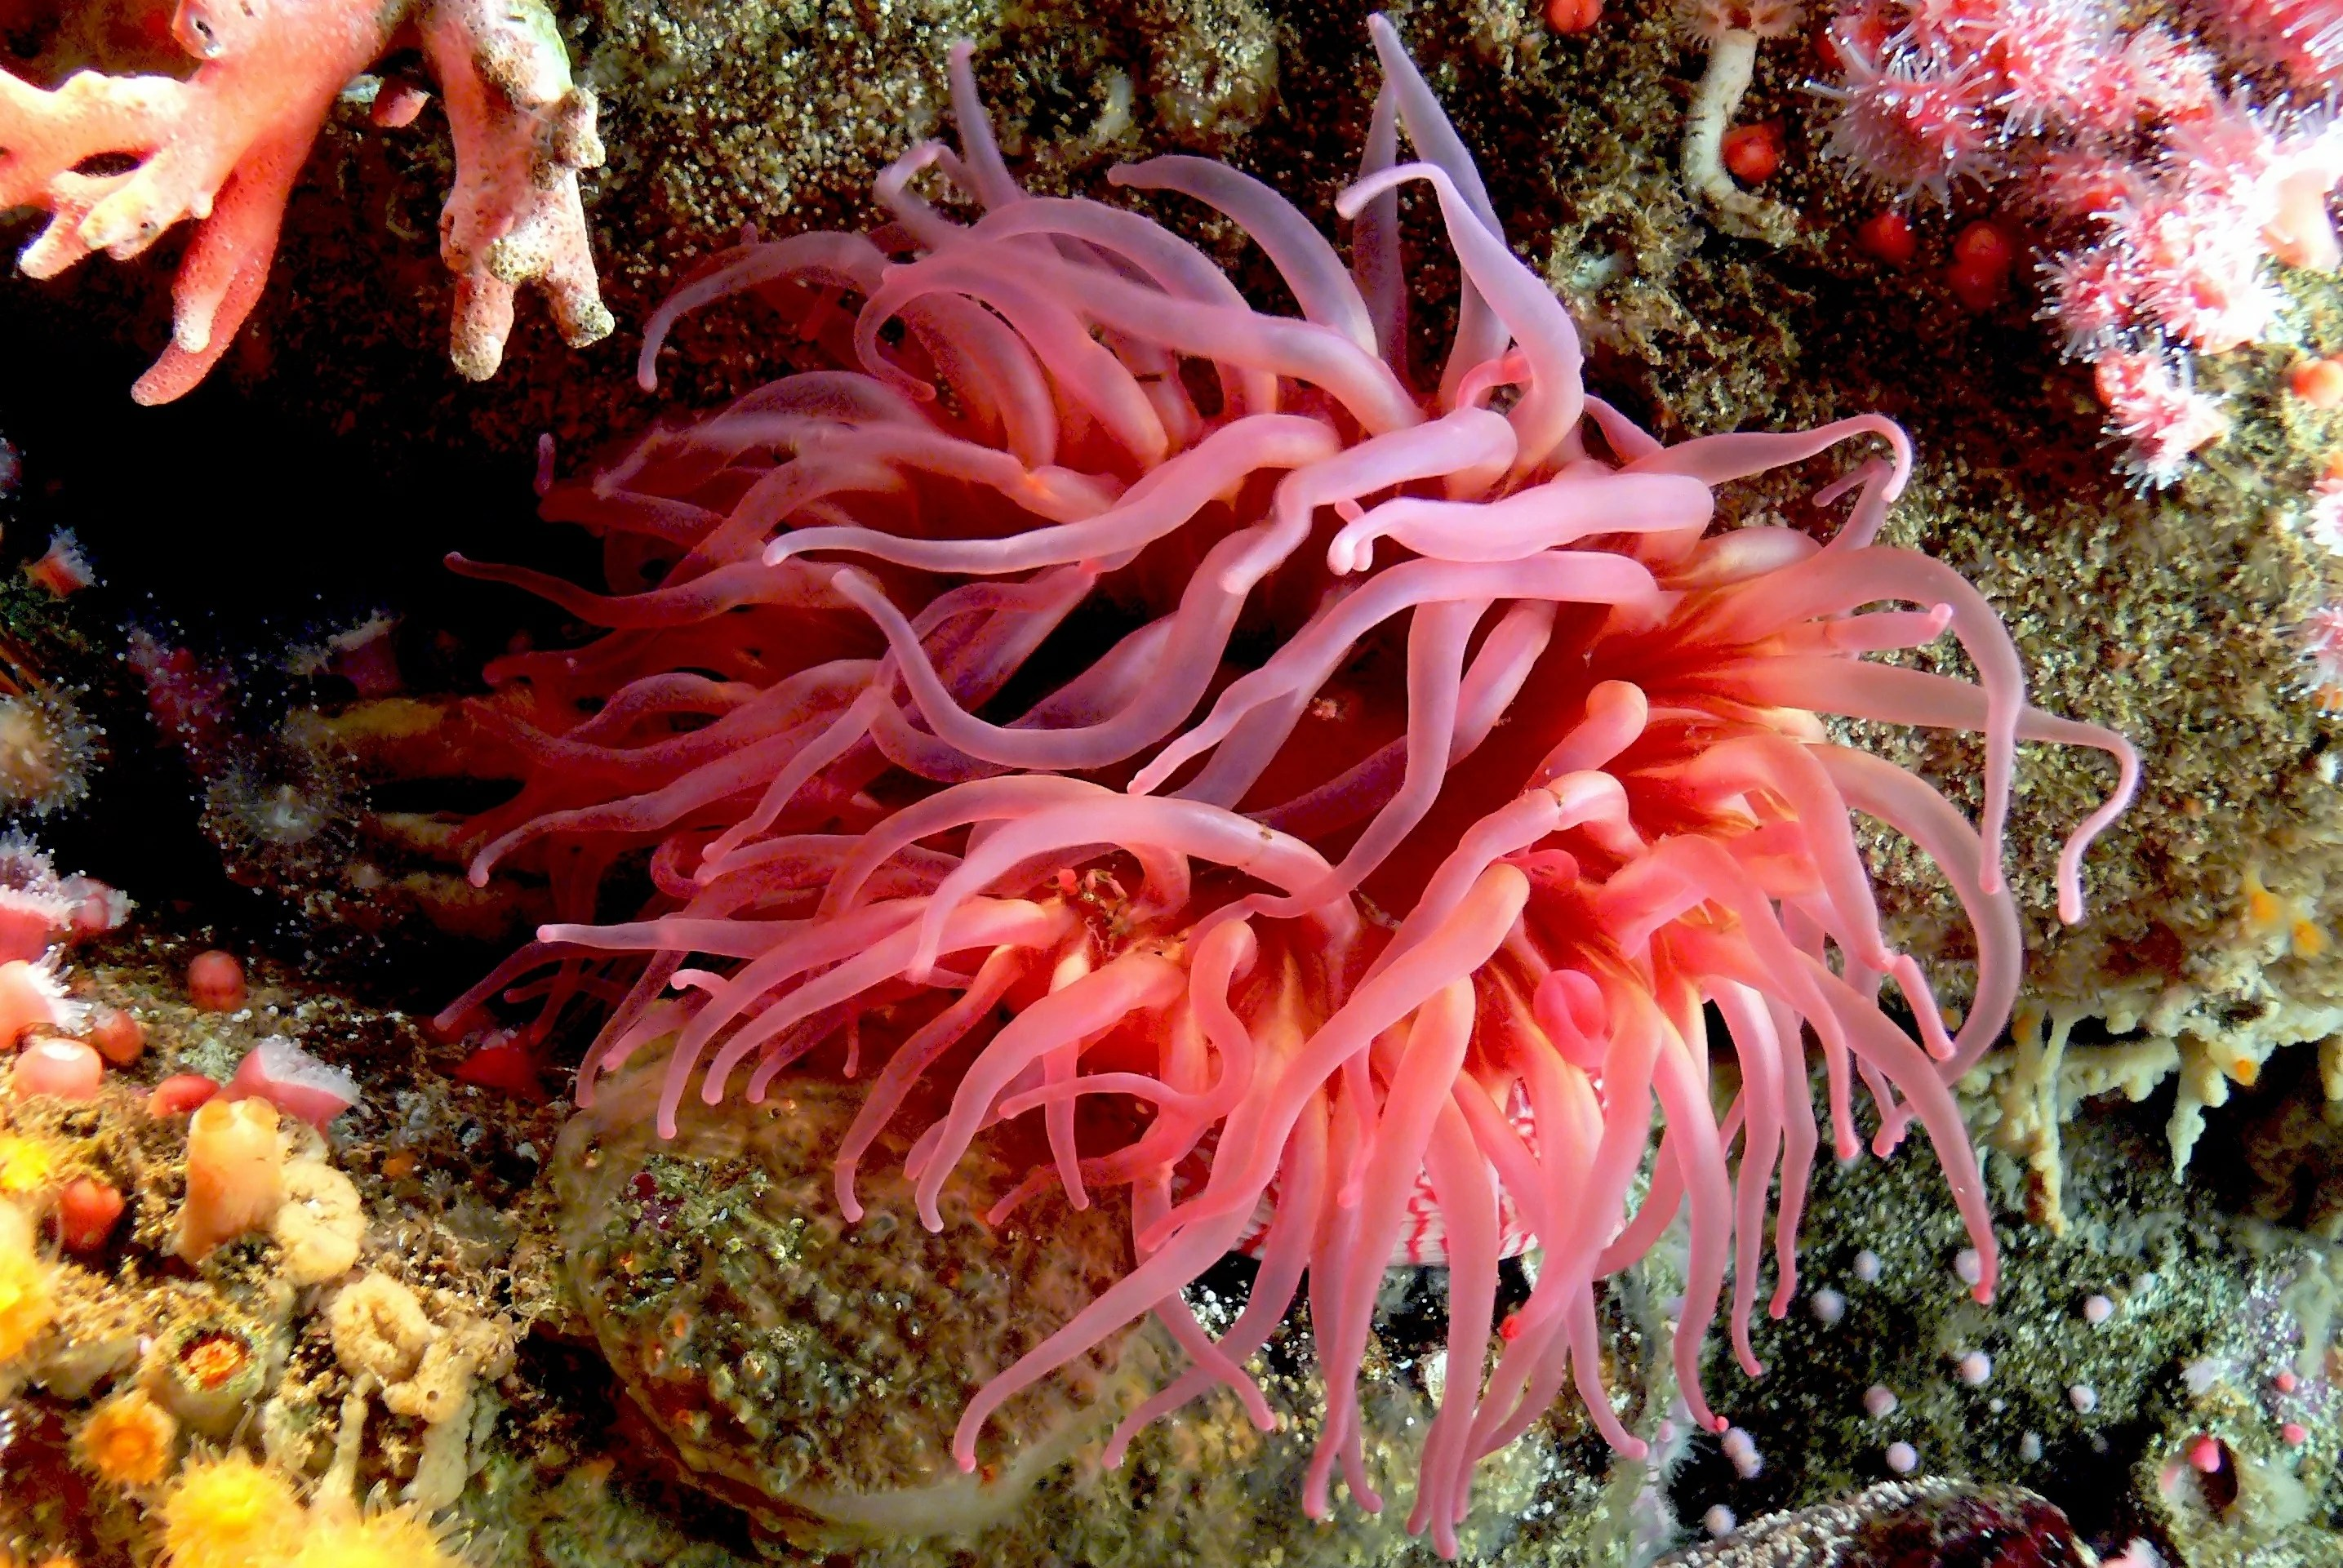 A group of creatures known as cnidarians, which includes sea anemones, are the only animals that inject venom via sting cells.